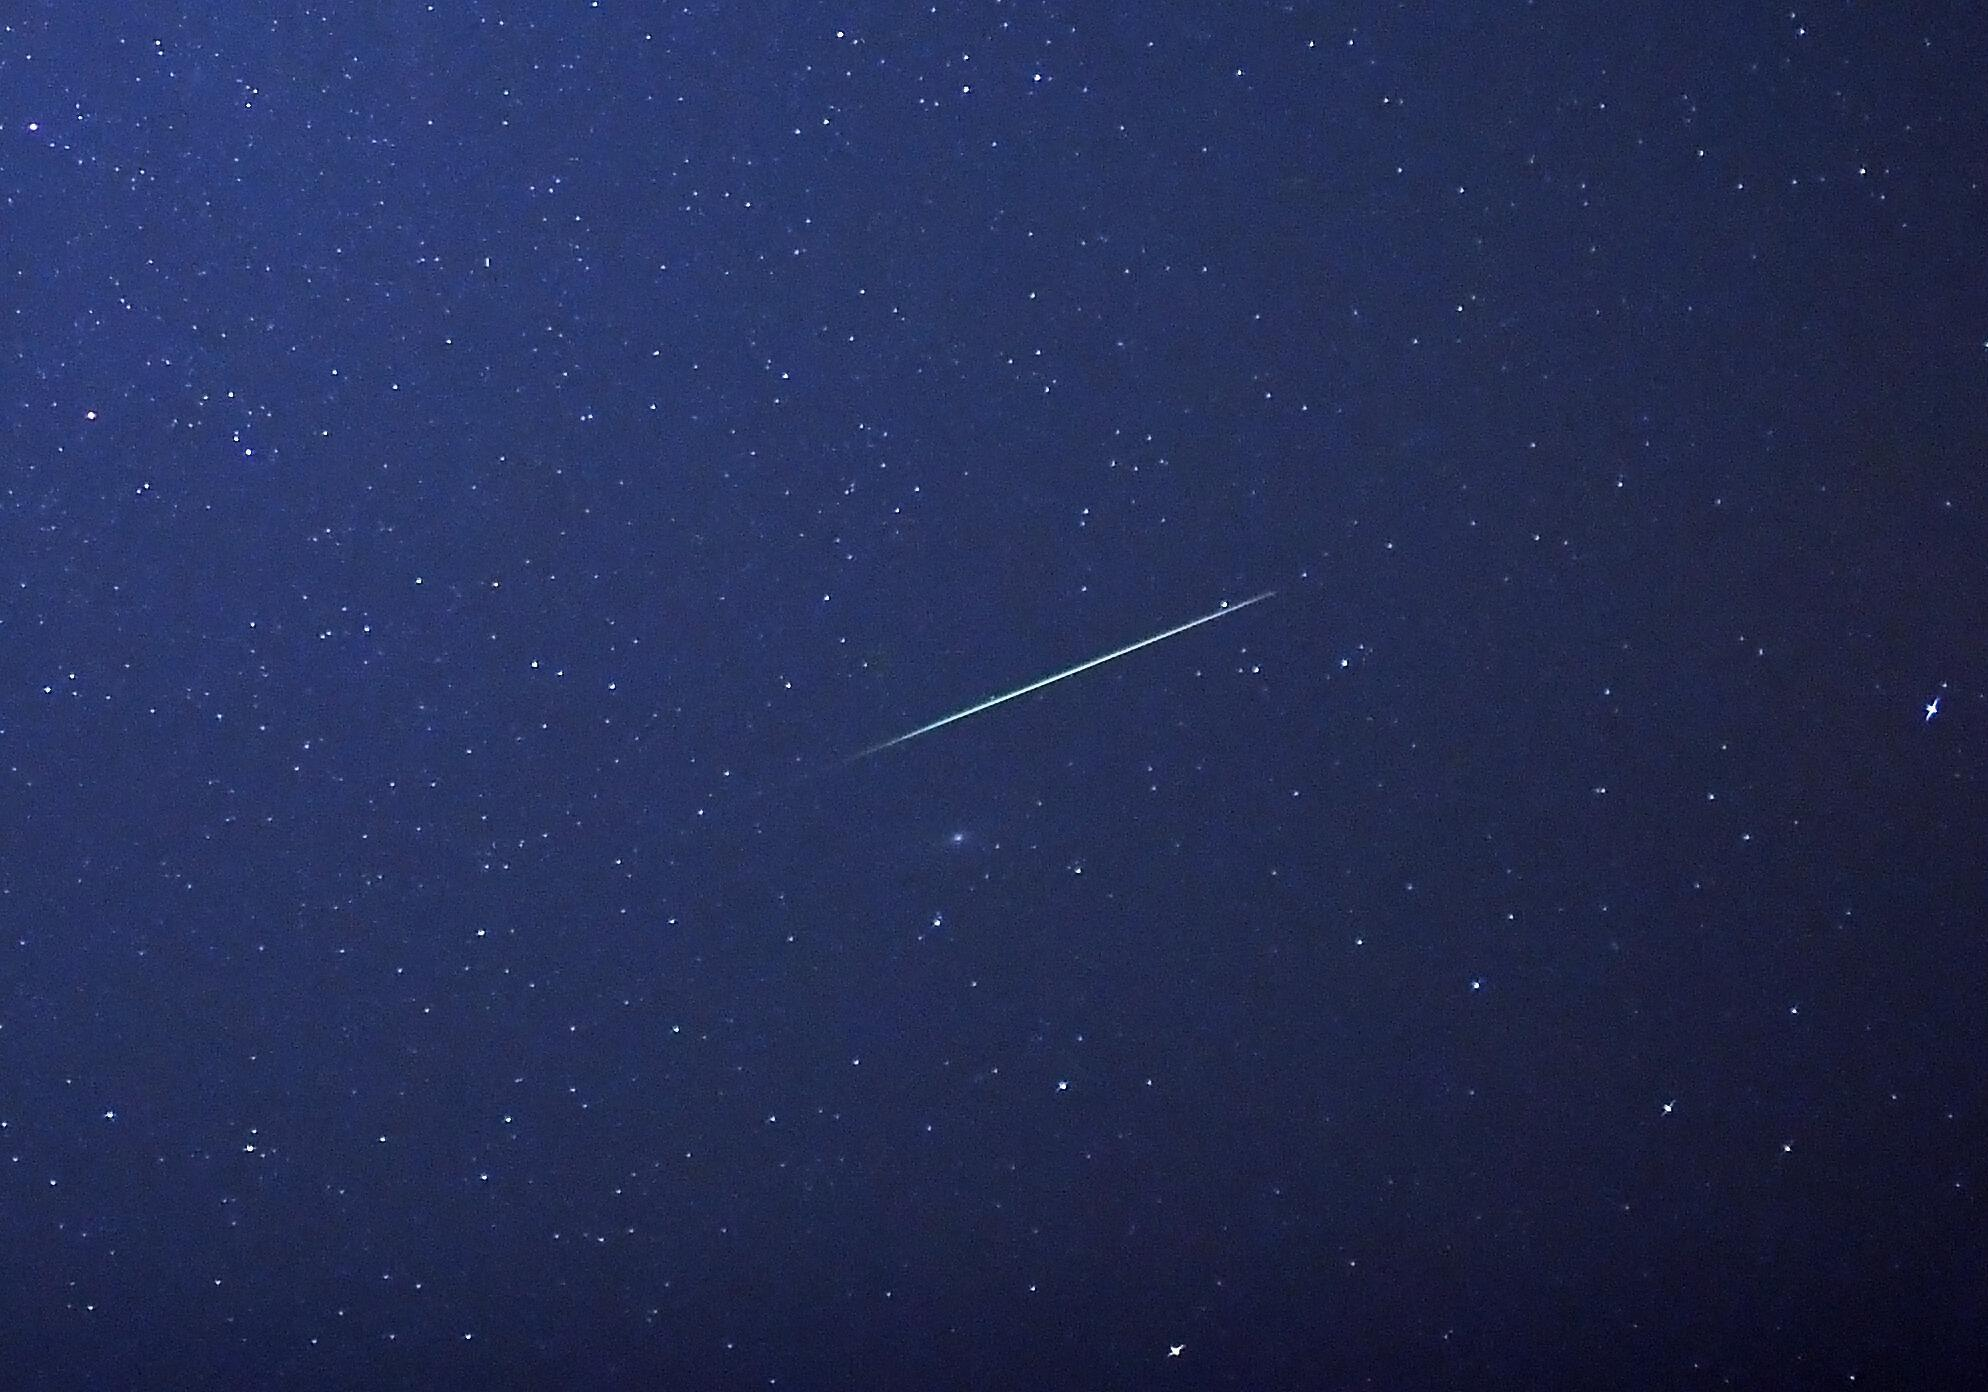 A shooting star in the German night sky. December 13 and 14 will be the best nights to watch the Geminid meteor shower.